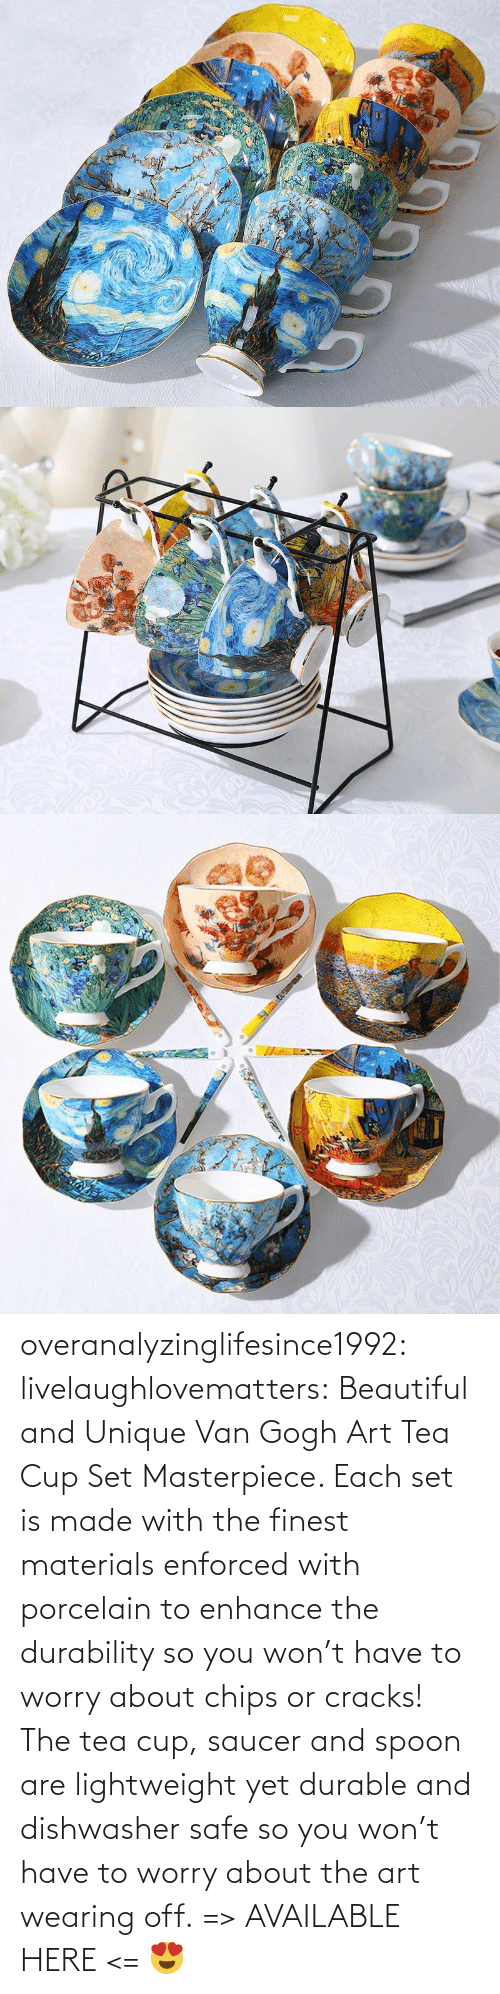 made: overanalyzinglifesince1992: livelaughlovematters:  Beautiful and Unique Van Gogh Art Tea Cup Set Masterpiece. Each set is made with the finest materials enforced with porcelain to enhance the durability so you won't have to worry about chips or cracks! The tea cup, saucer and spoon are lightweight yet durable and dishwasher safe so you won't have to worry about the art wearing off. => AVAILABLE HERE <=    😍